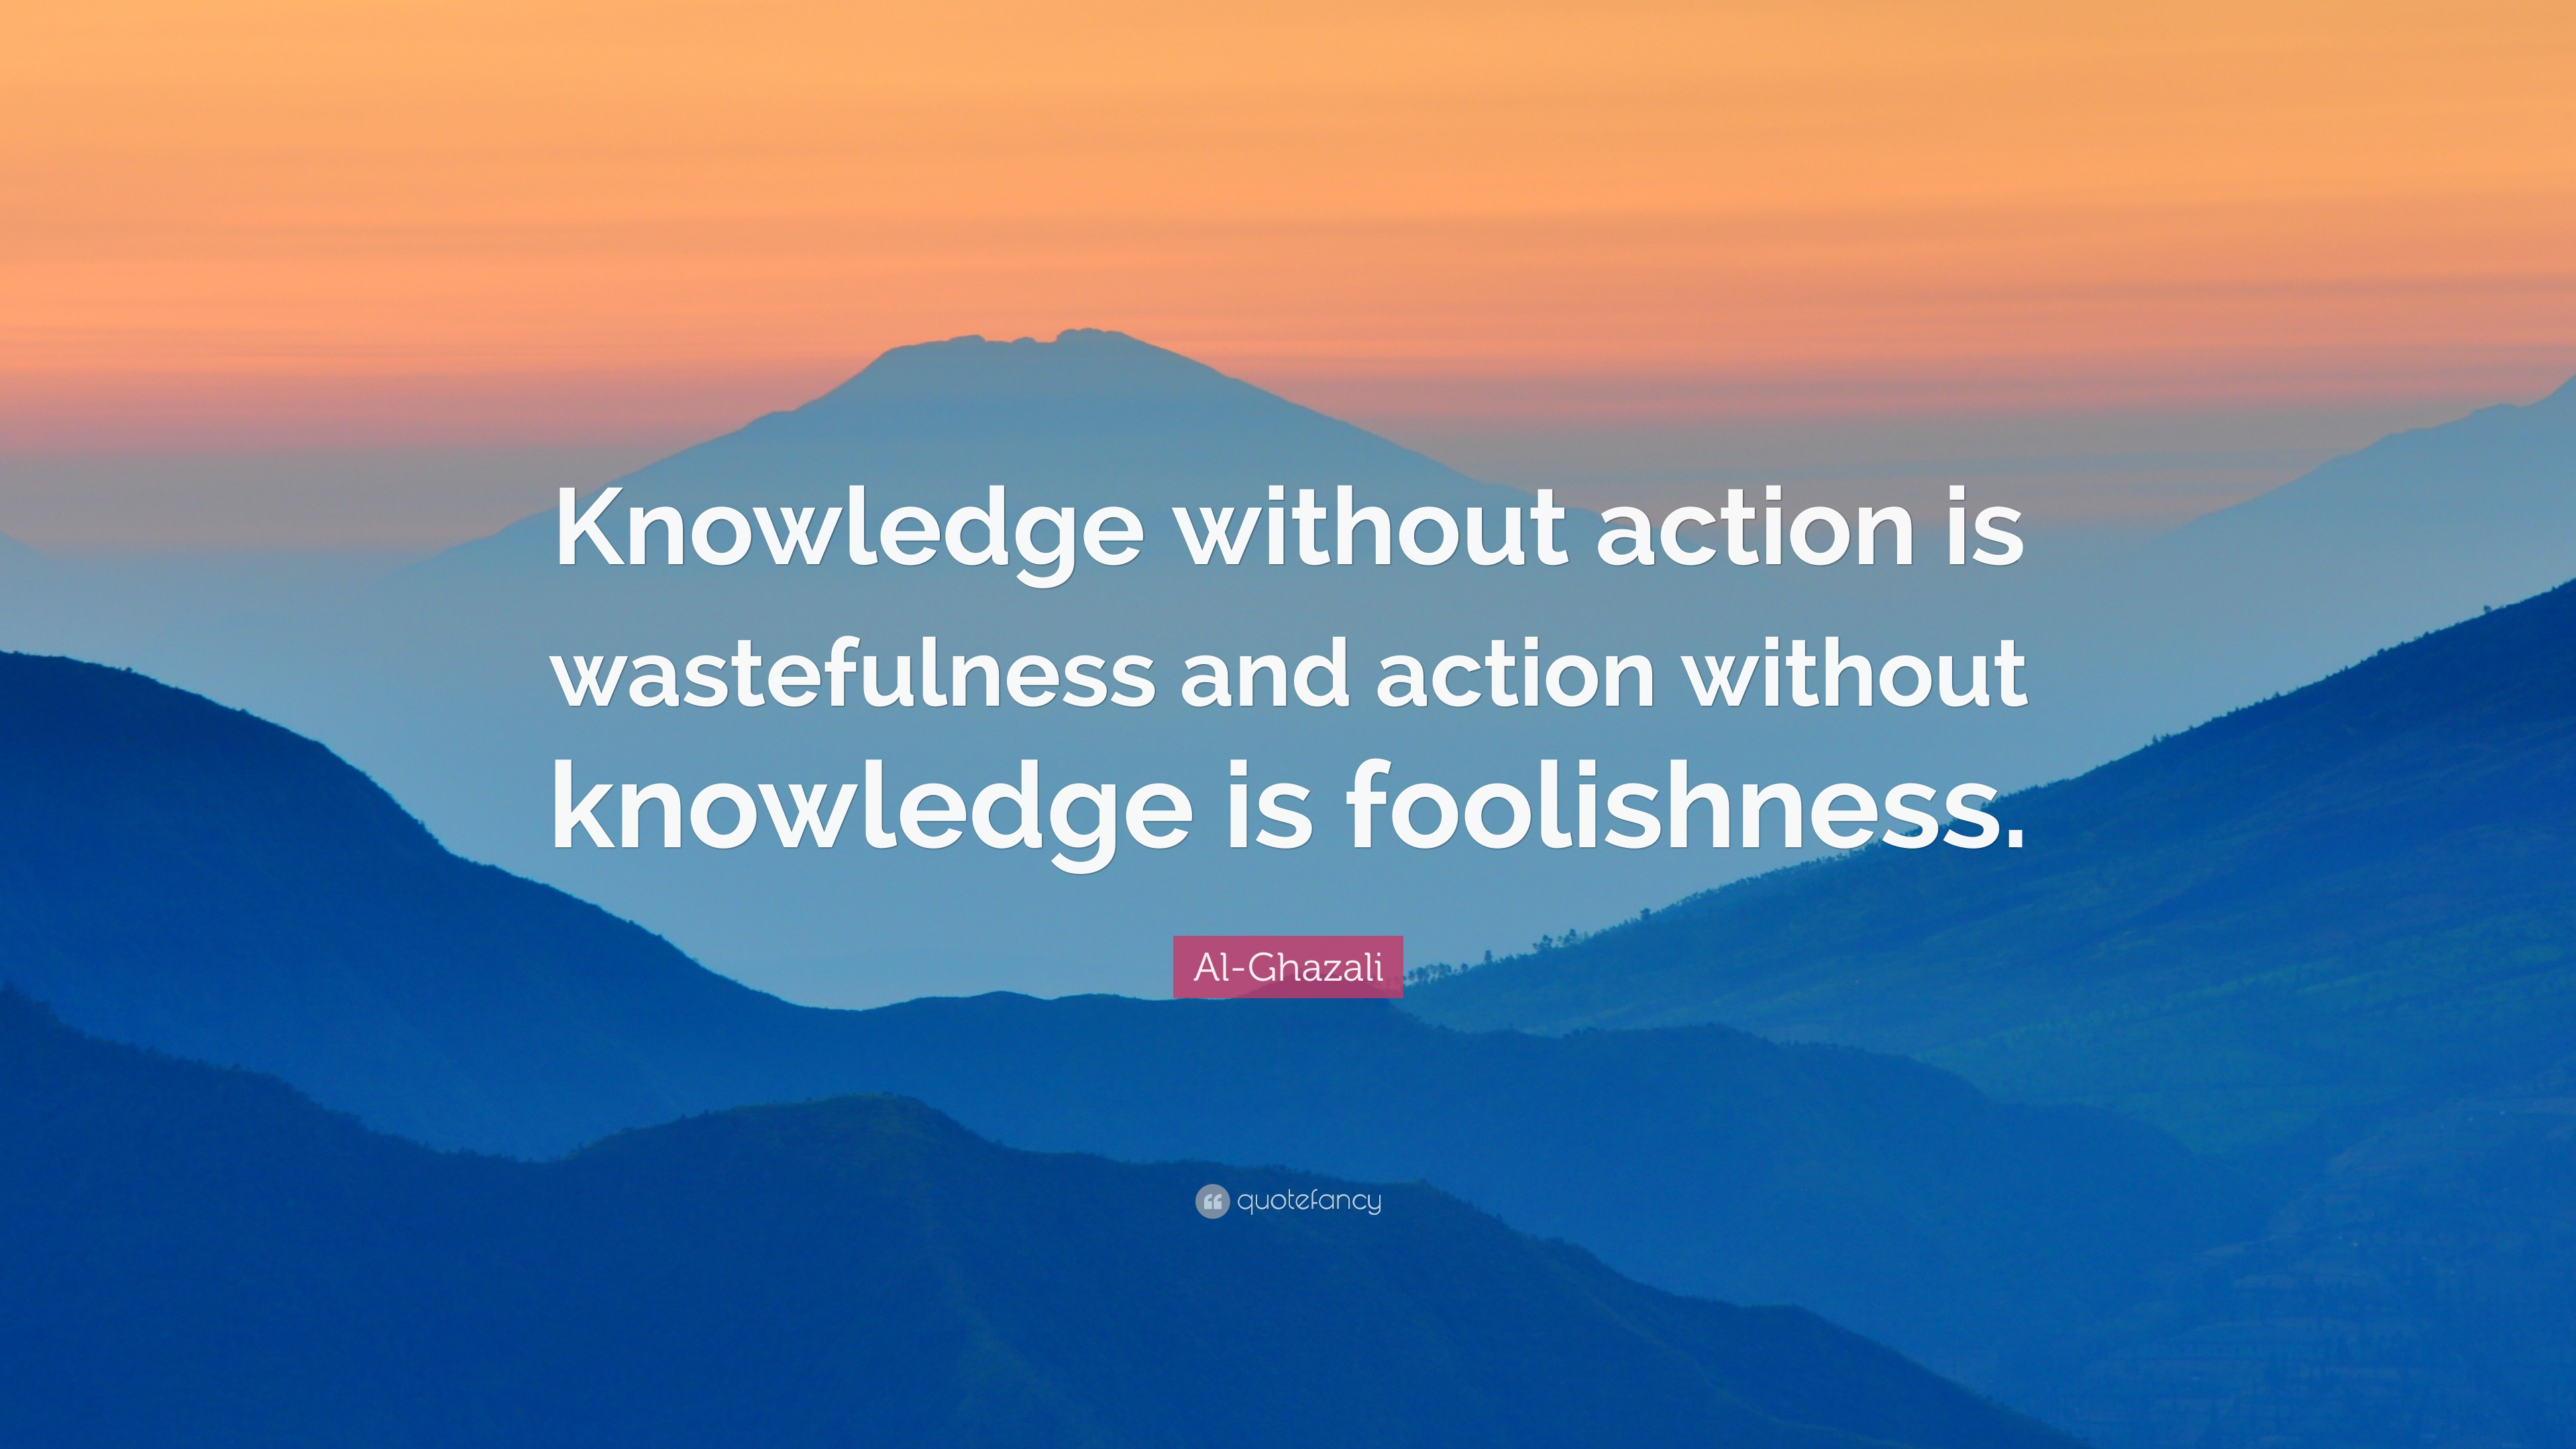 """Al-Ghazali Quote: """"Knowledge without action is wastefulness and action  without knowledge is foolishness."""" (12 wallpapers) - Quotefancy"""